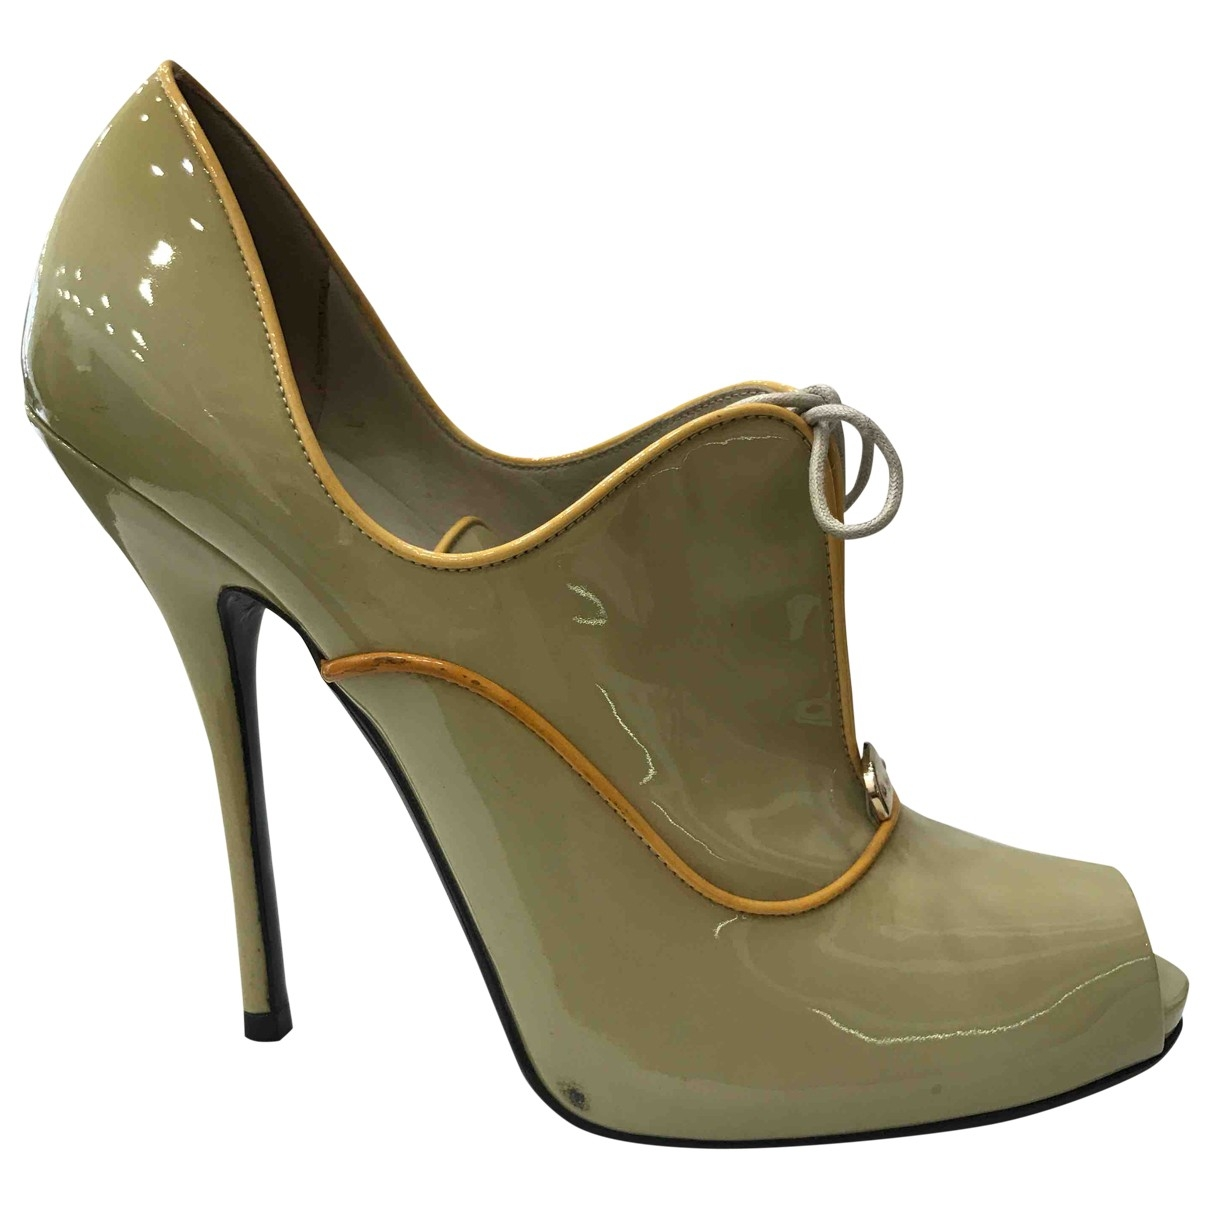 Gucci \N Green Patent leather Heels for Women 40 EU